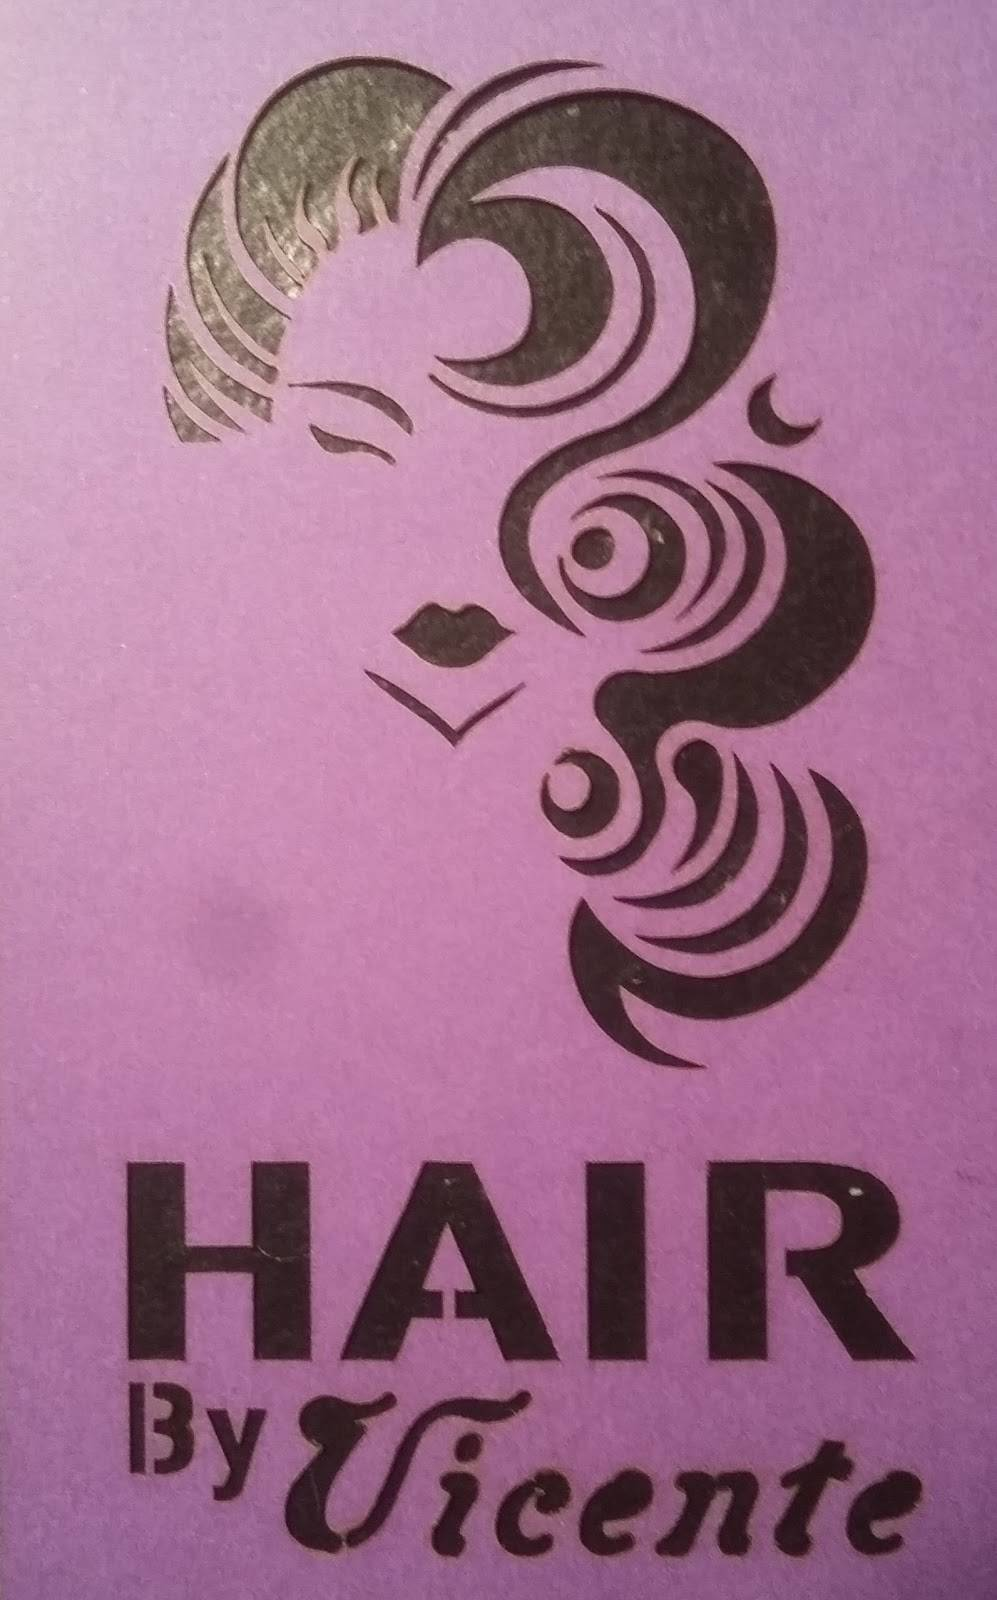 VDT Designs - hair care  | Photo 2 of 3 | Address: 1200 76th Ave N, St. Petersburg, FL 33702, USA | Phone: (941) 249-0090